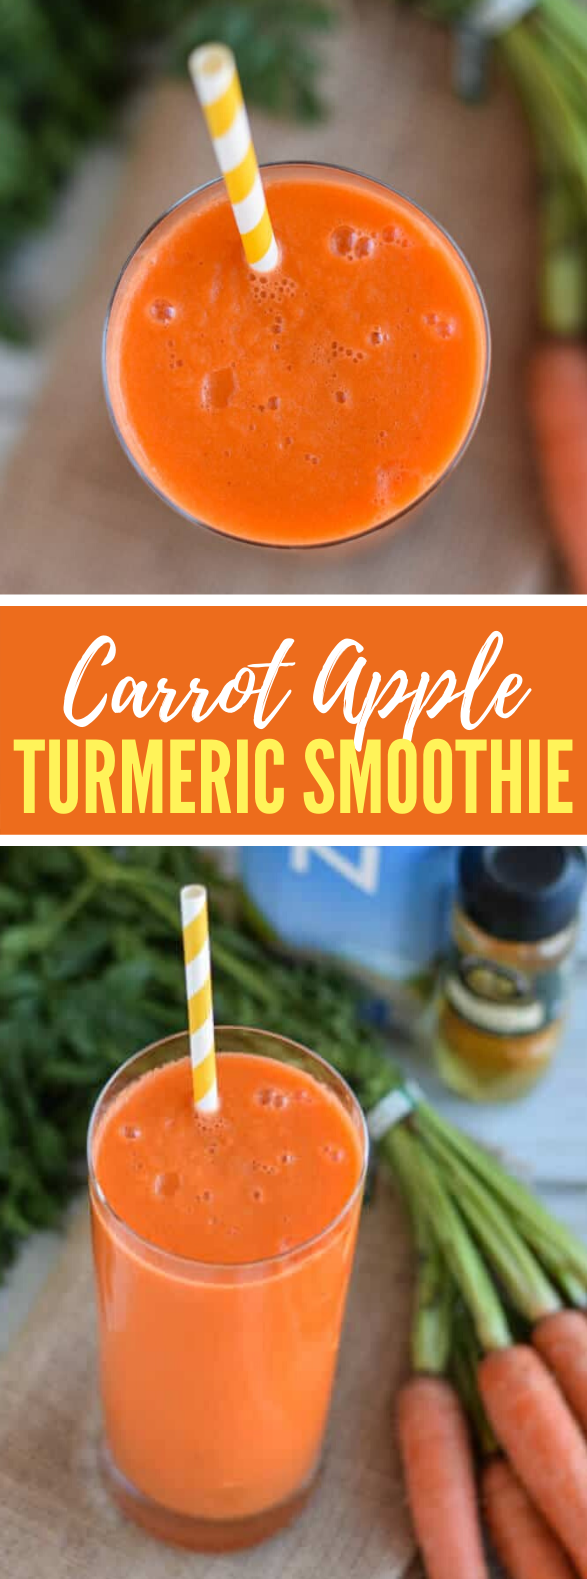 CARROT, APPLE AND TURMERIC SMOOTHIE #drink #healthy